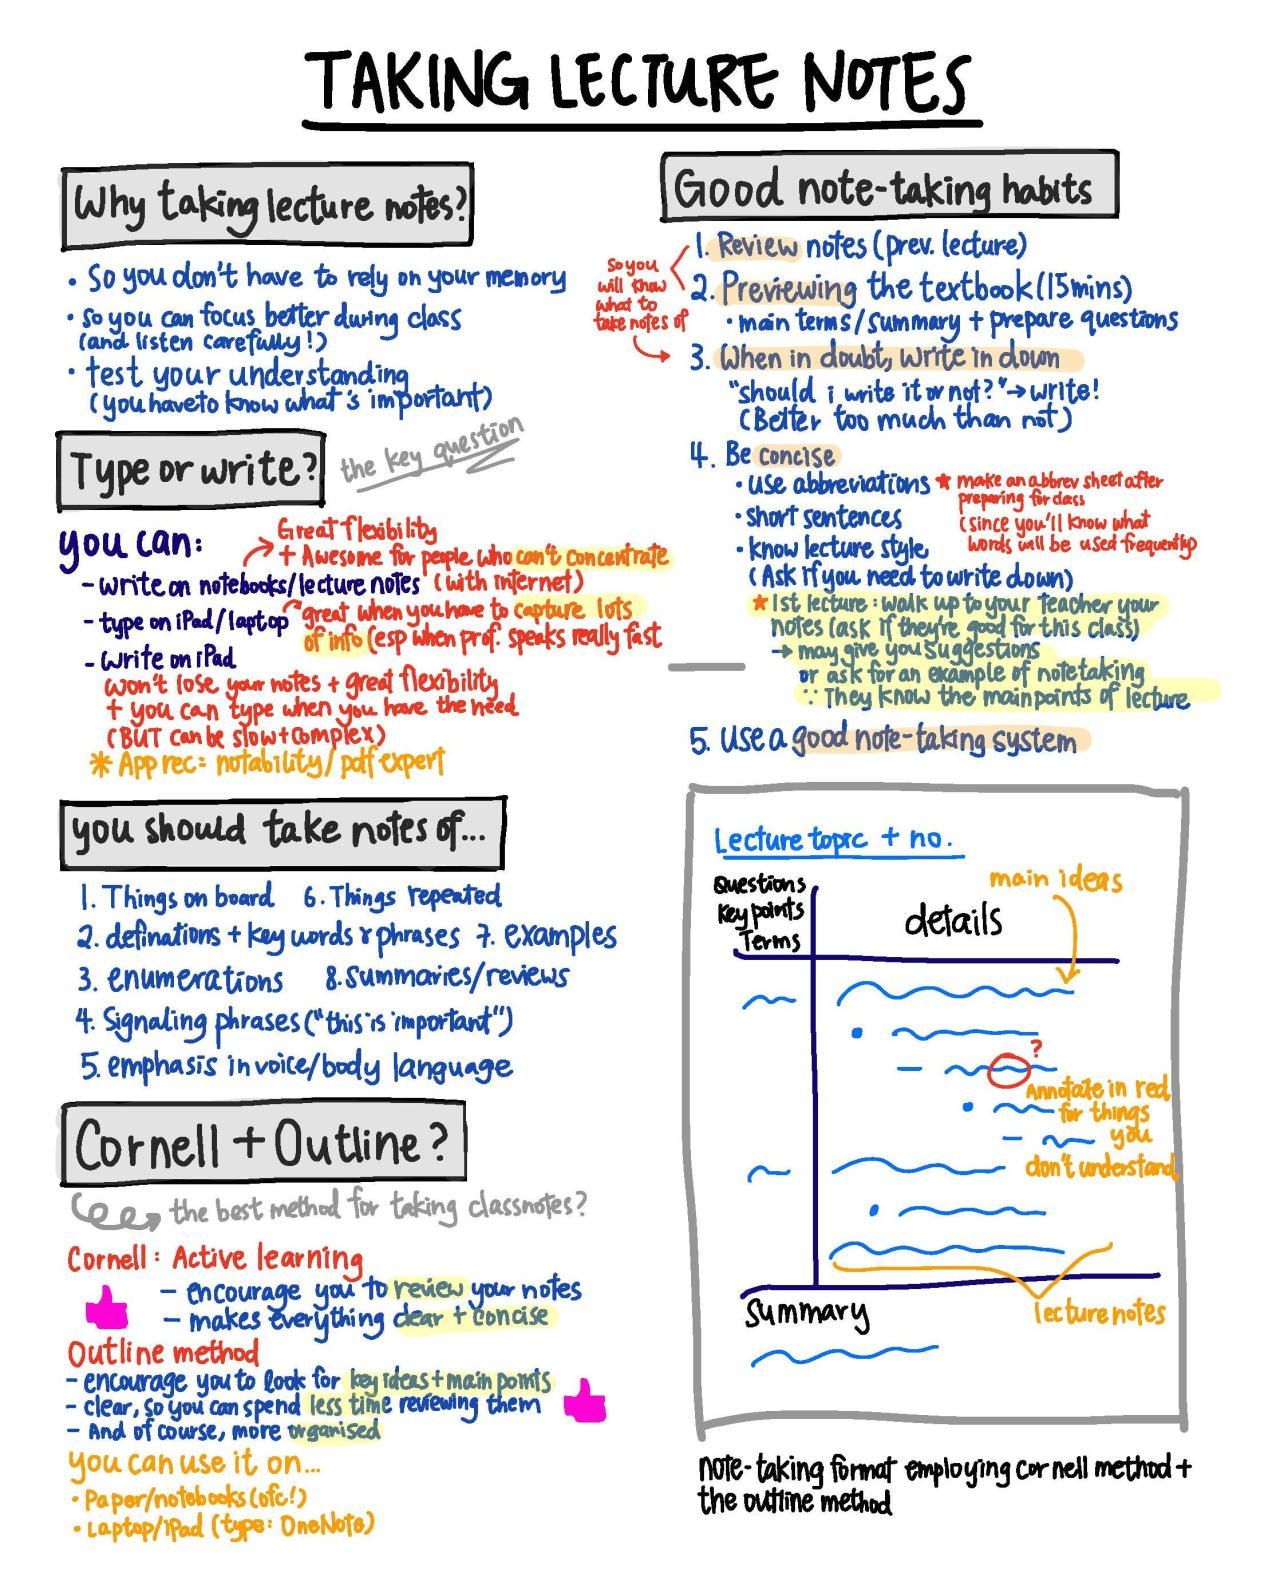 """strive-for-da-best: """" A summary on how to take good lecture notes"""